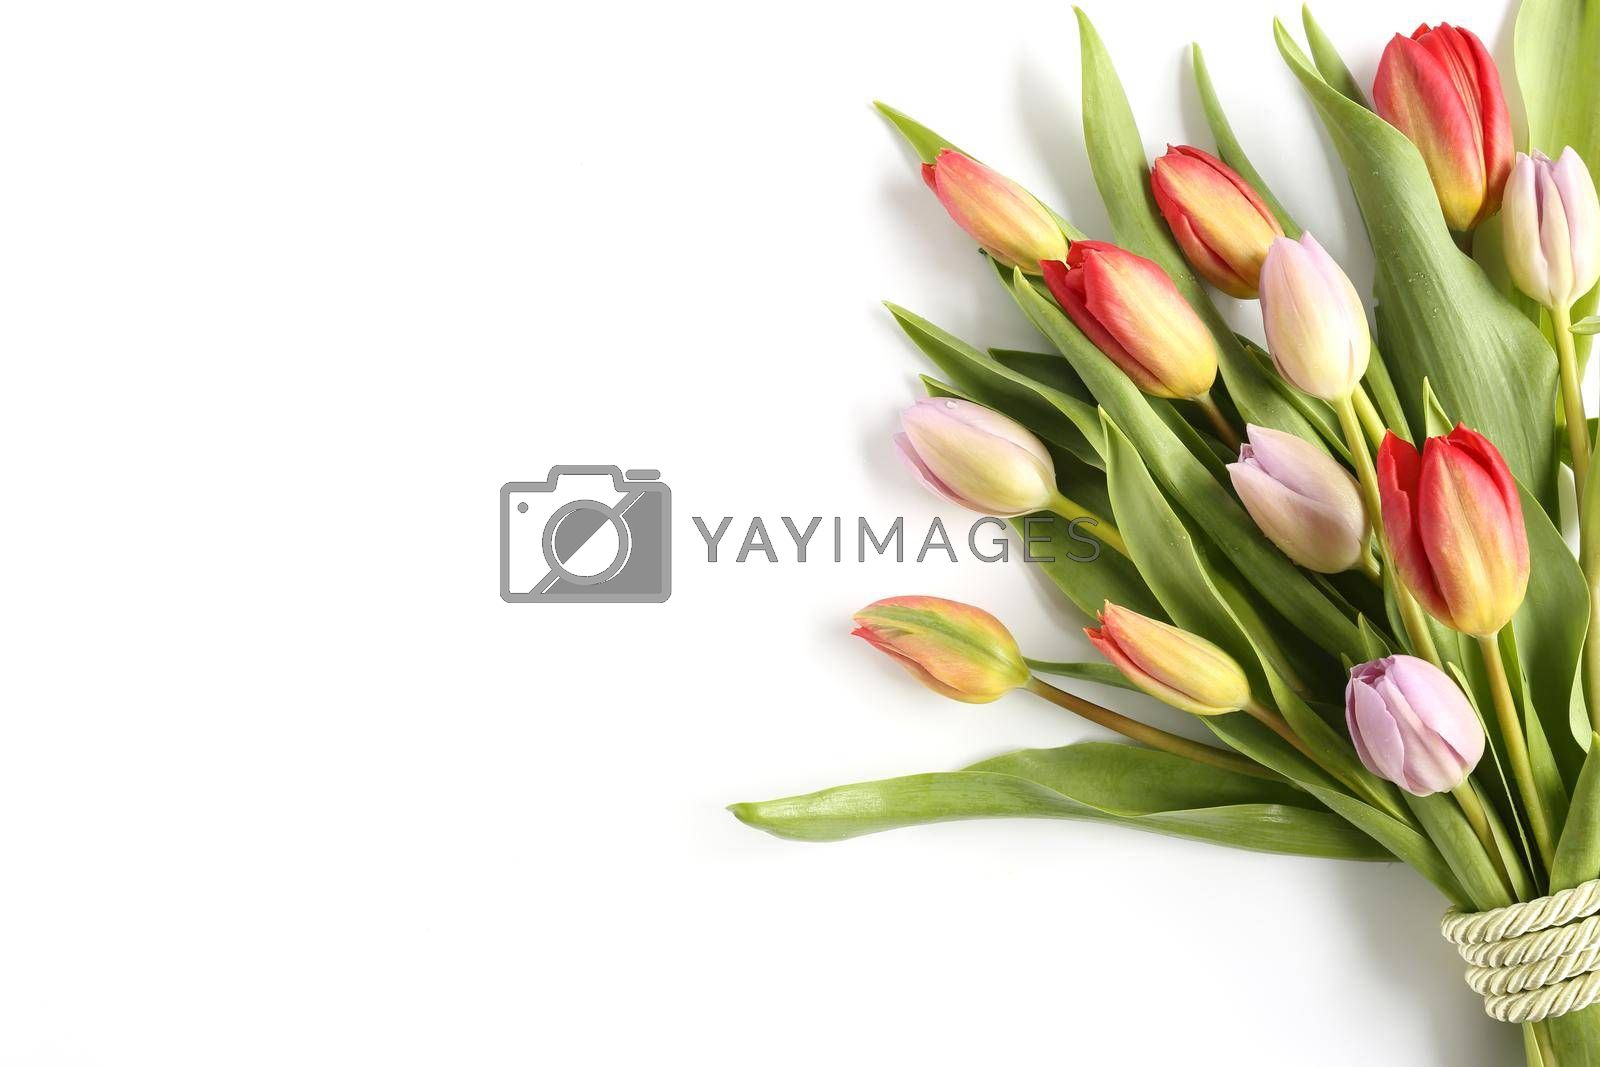 Beautiful fresh bouquet of spring flowers tulips on white background. Spring, celebration, birthday, Mothers day, invitation, congratulation, gift concept. Card, banner, mock up, poster spring mood